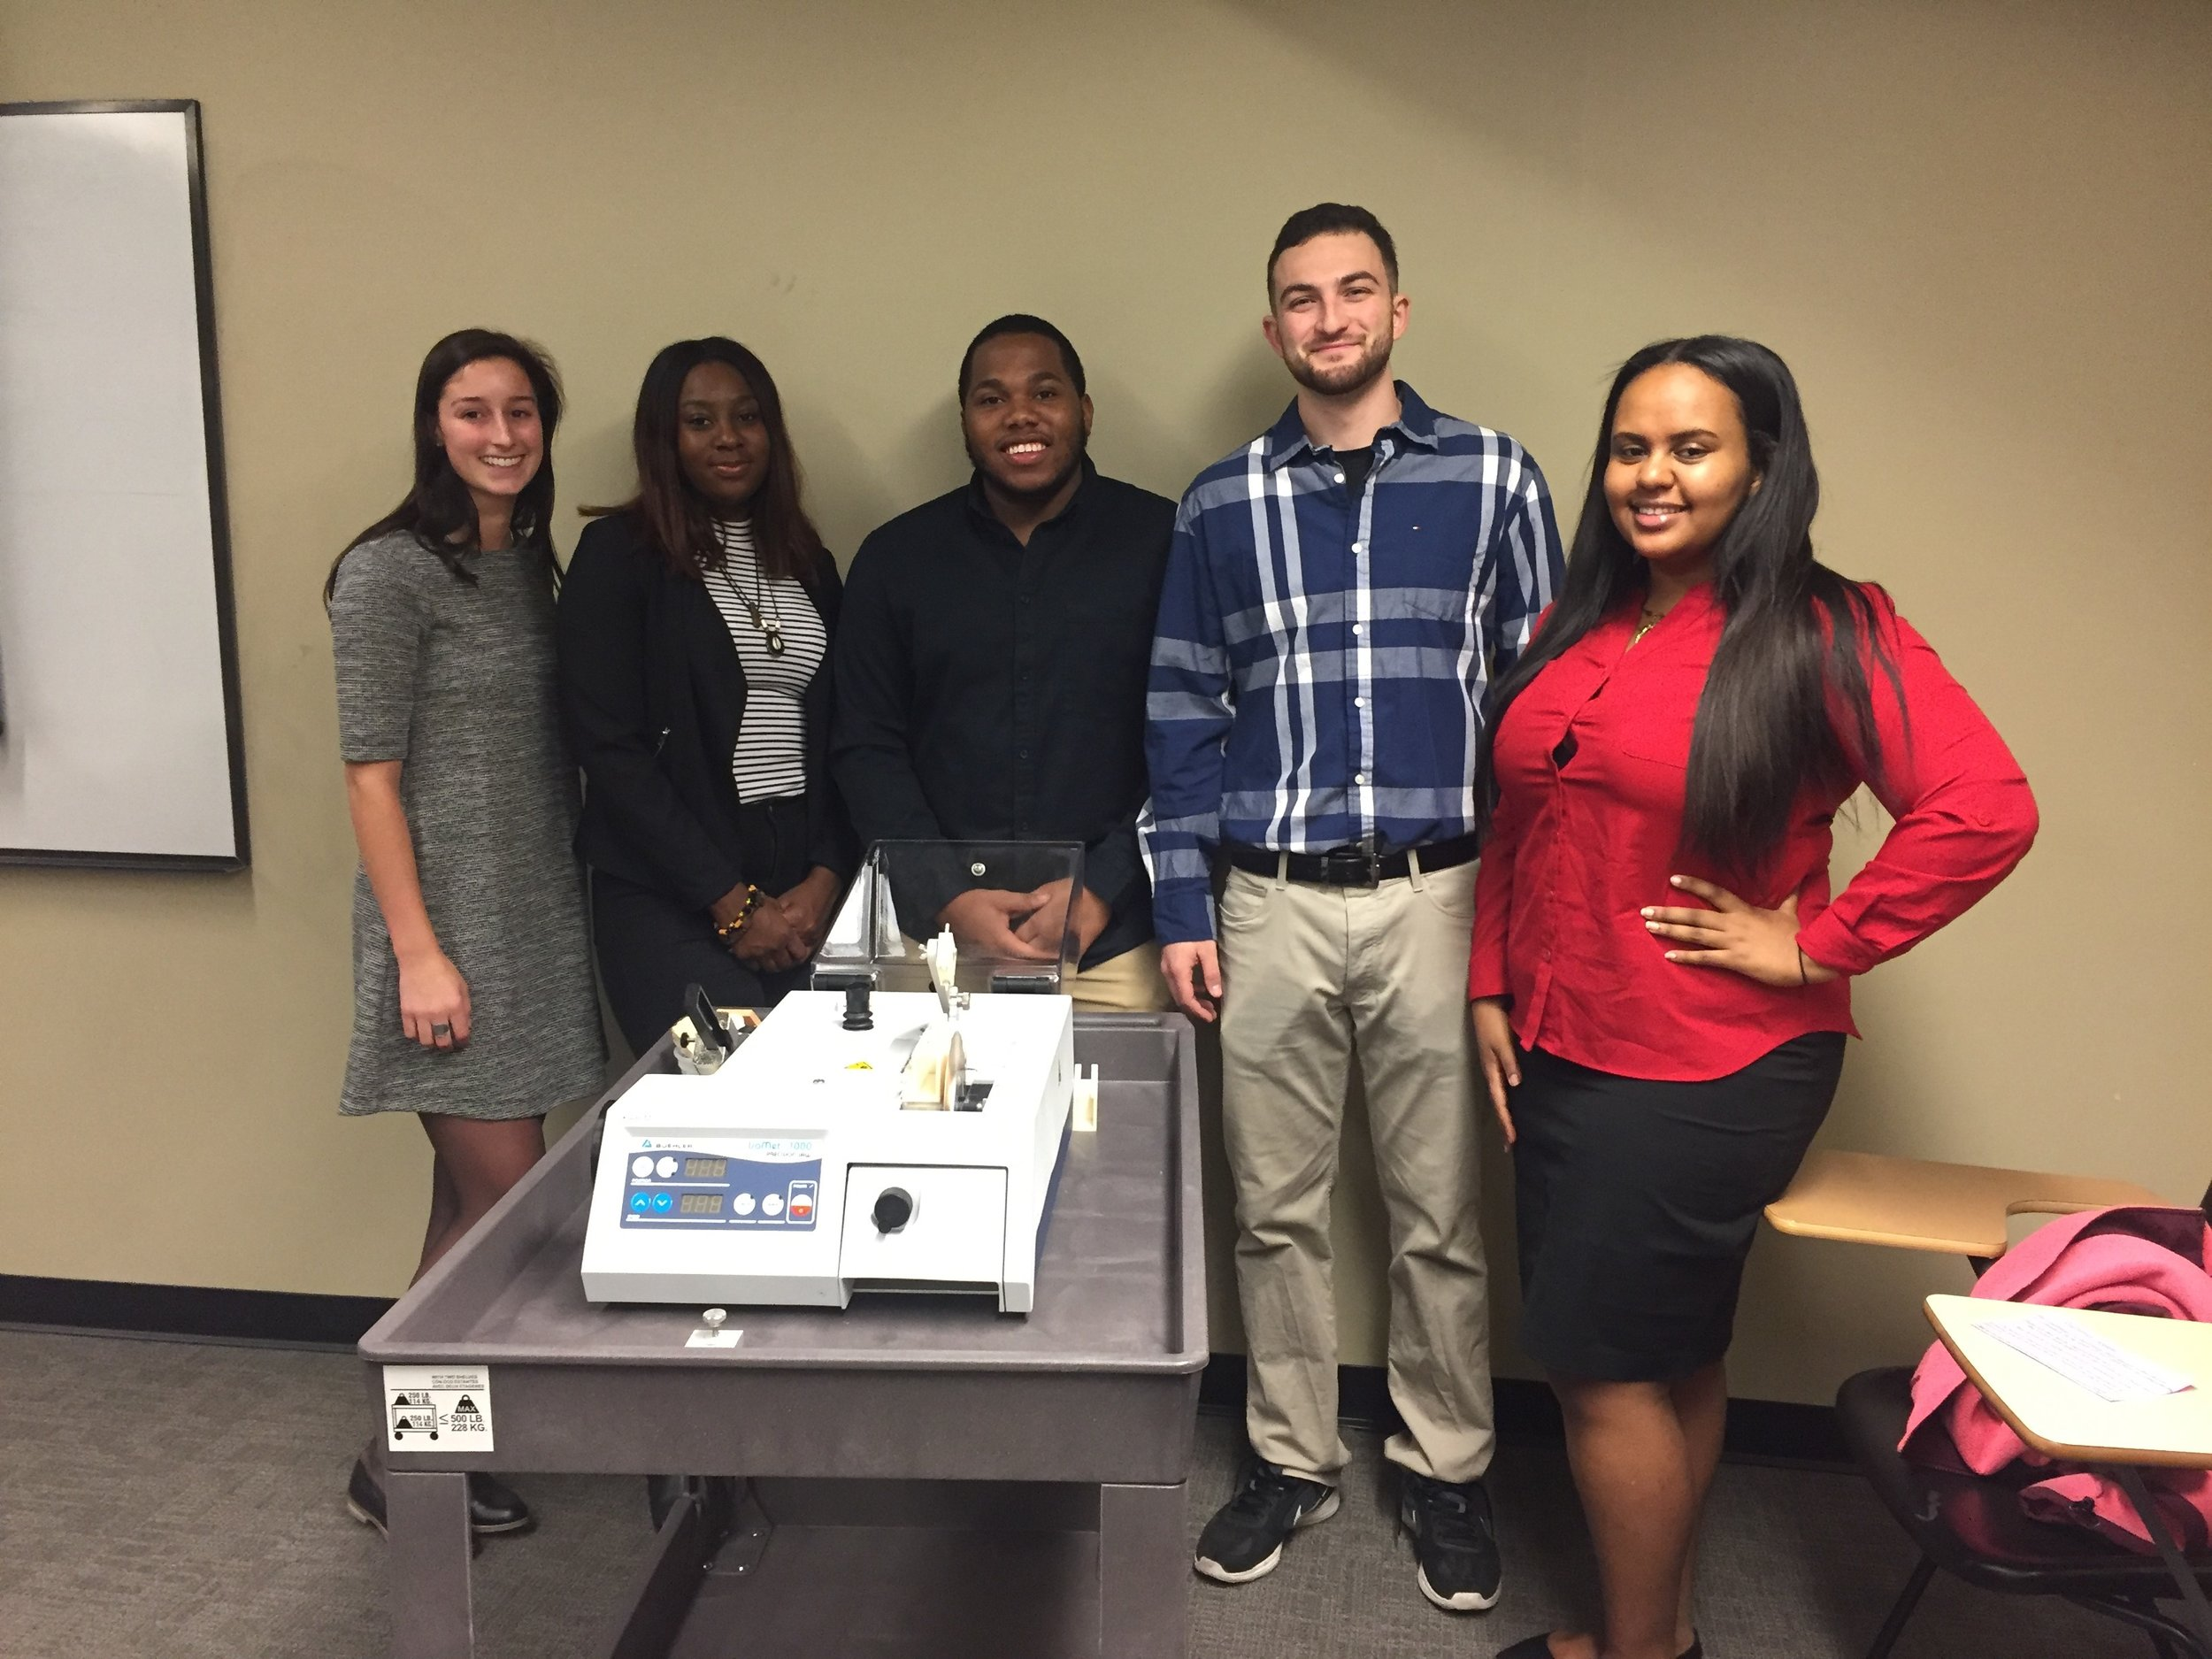 - BONE NOTCHER TEAM (2016-2017)Our team is 3D printing and building a portable and adjustable device that integrates with a low speed saw and can be used to create small controlled notches into human bone specimens for fracture toughness testing. (From left to right: Talia D'Ambruoso, Nengi Charles-Ogan, Luc Pierre-Louis, Eddie Floyd, Mekides Mezgebu)